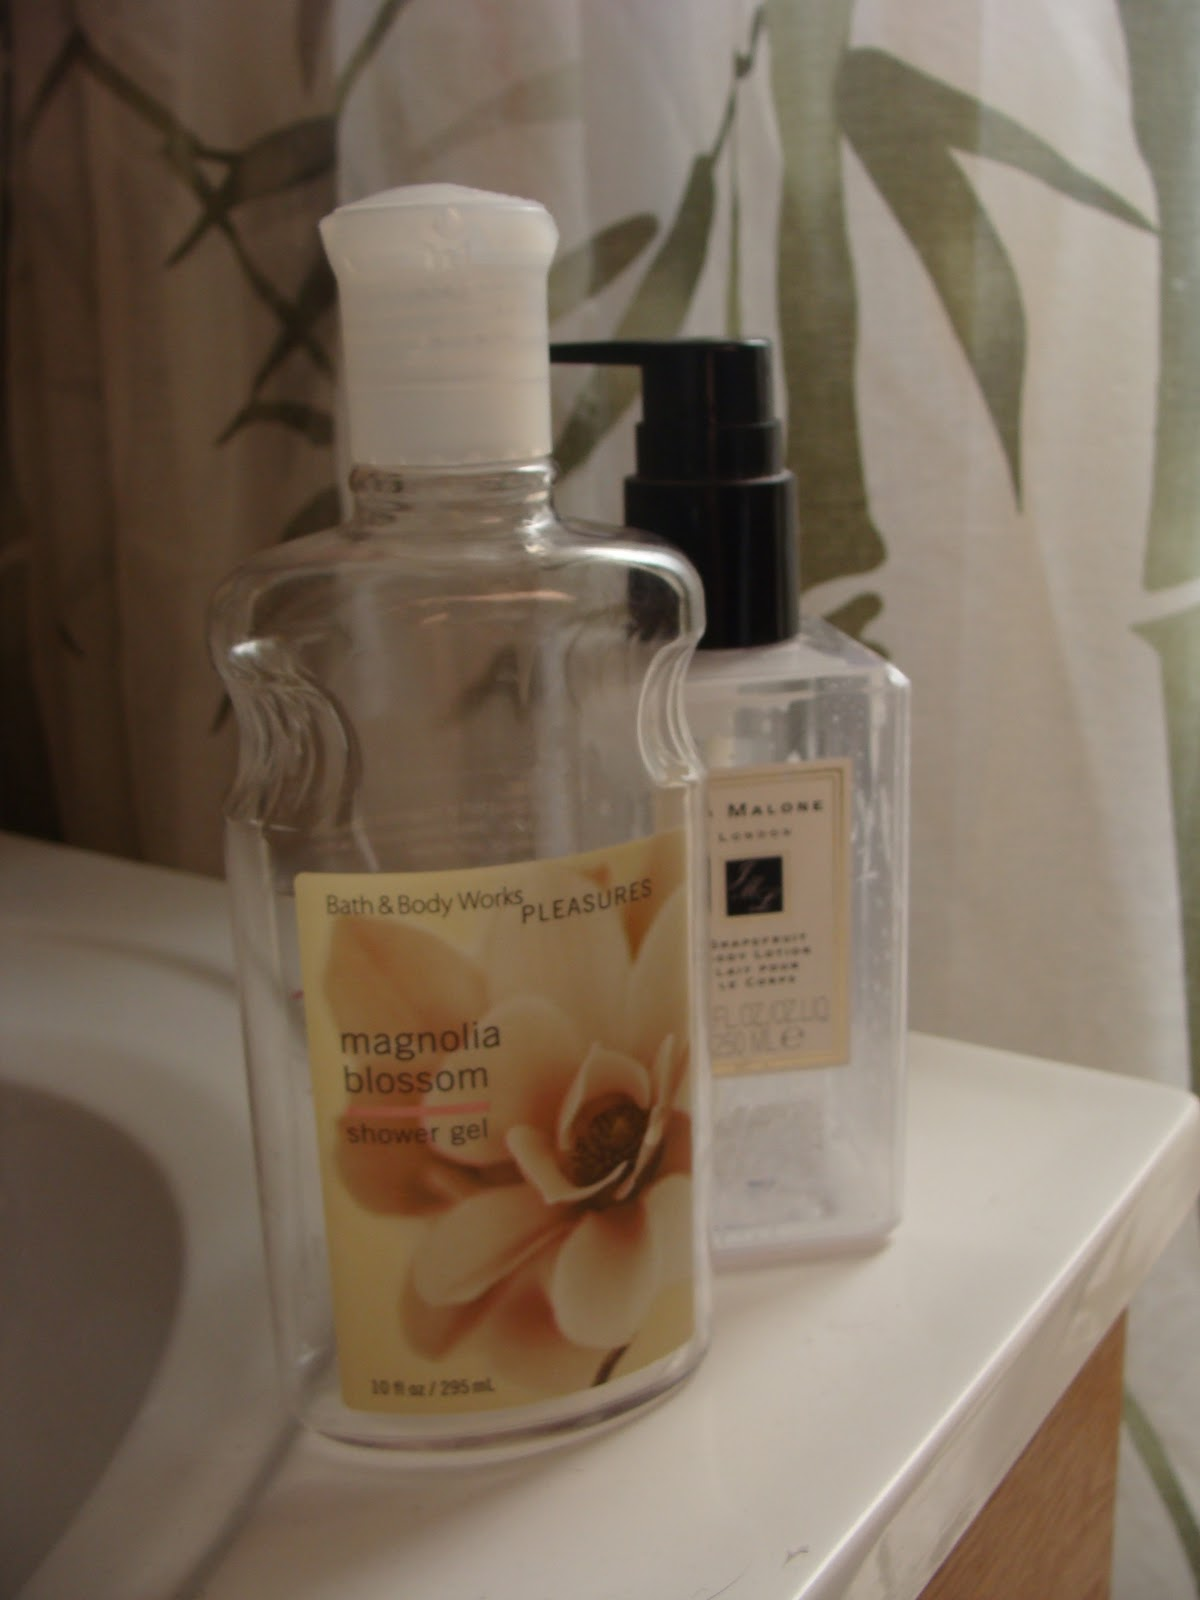 Magnolia Blossom Bath And Body Works